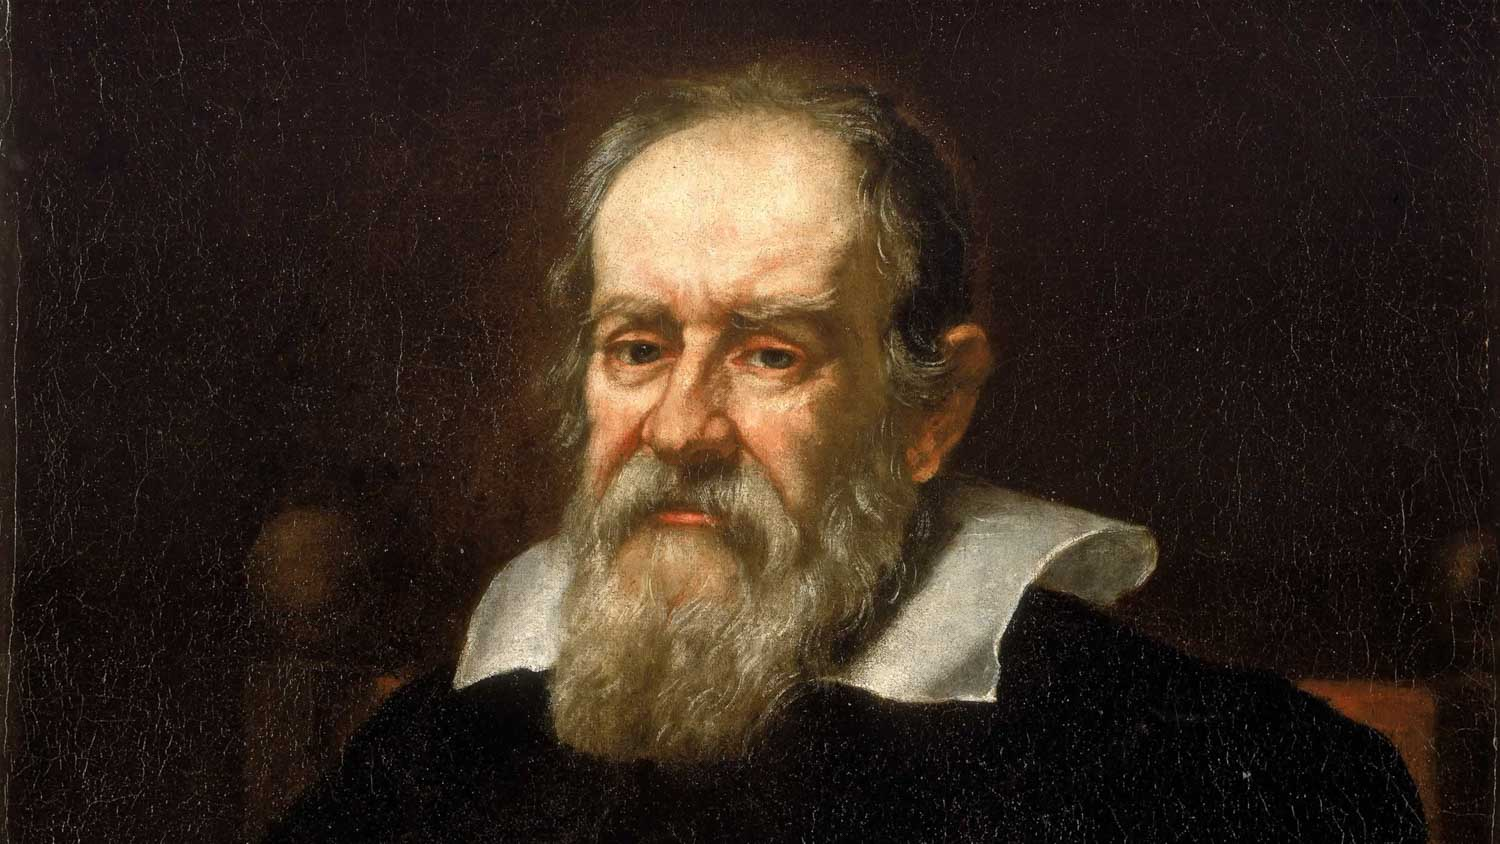 Galileo's famous experiment probably didn't happen